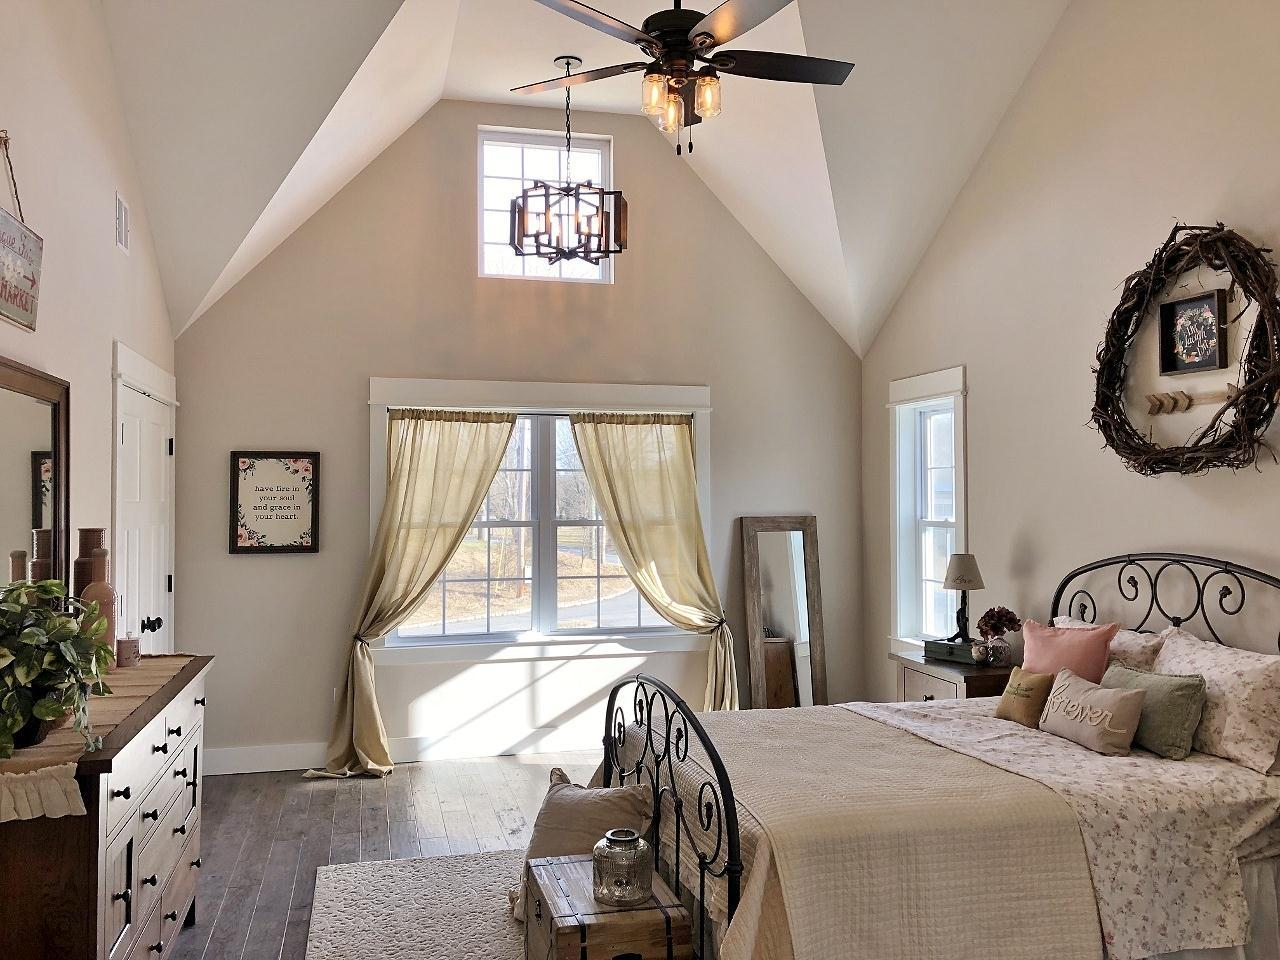 Bedroom featured in The Fennel By Realty Promotions, Inc. in Orange County, NY